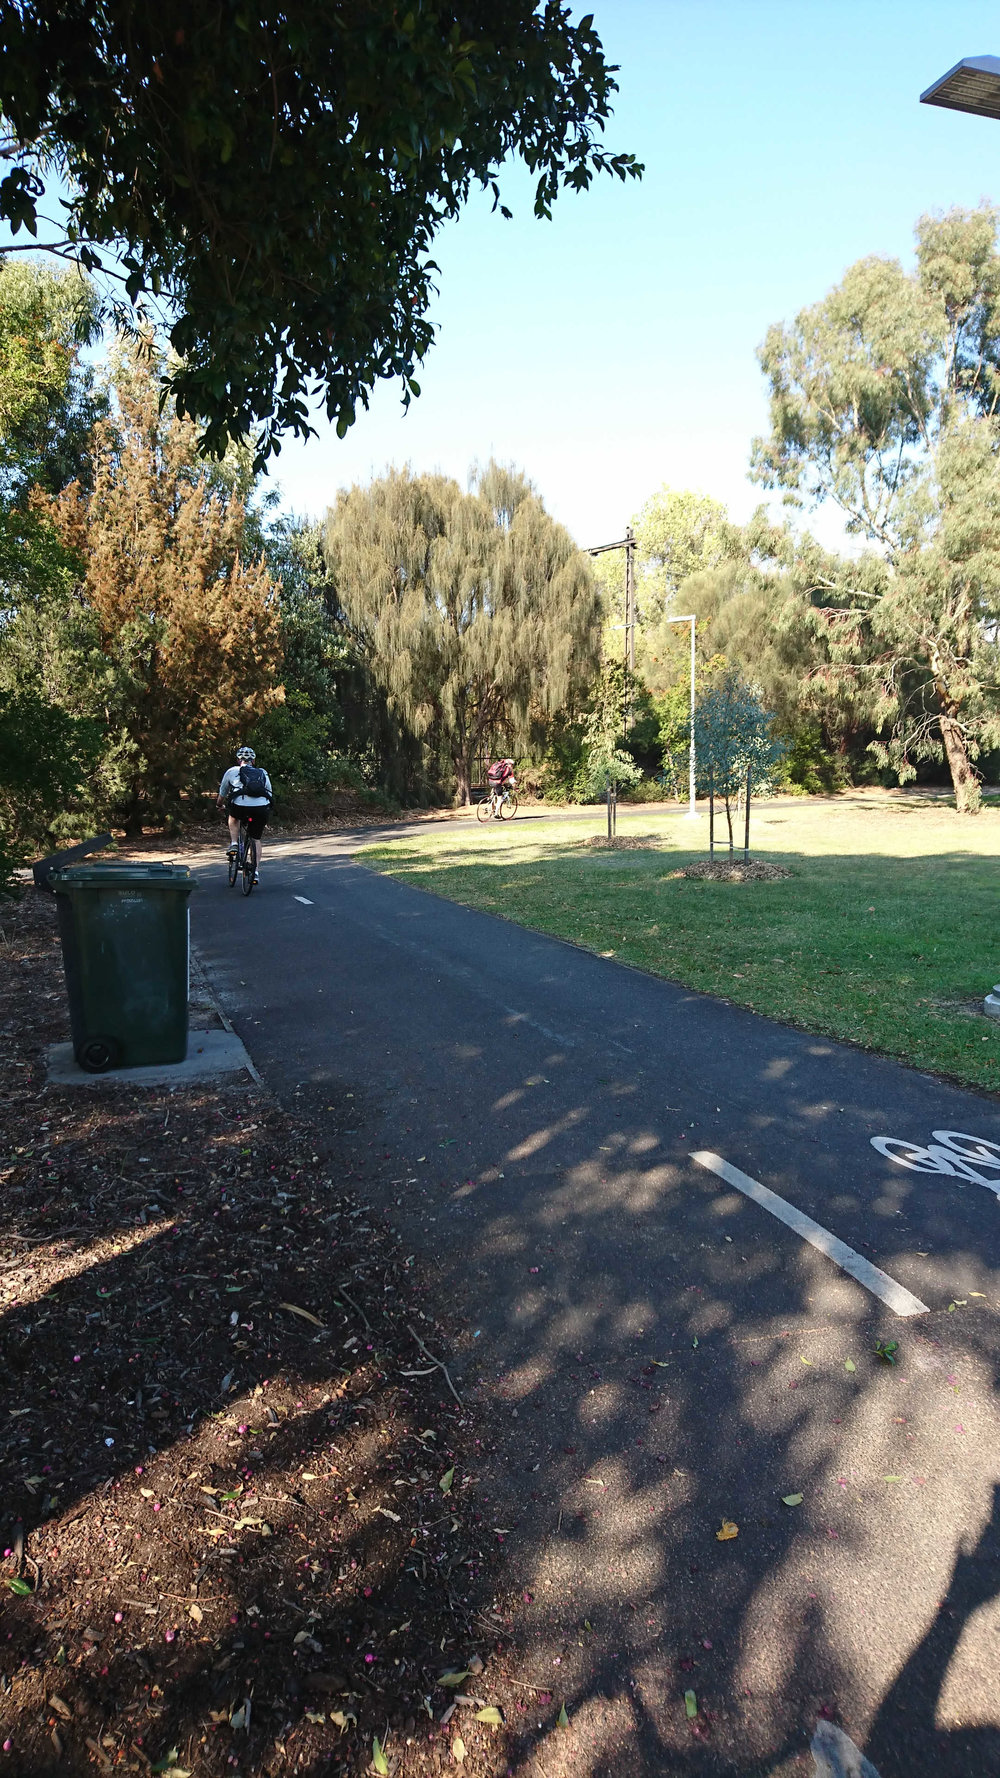 This path is well used by people cycling and walking.